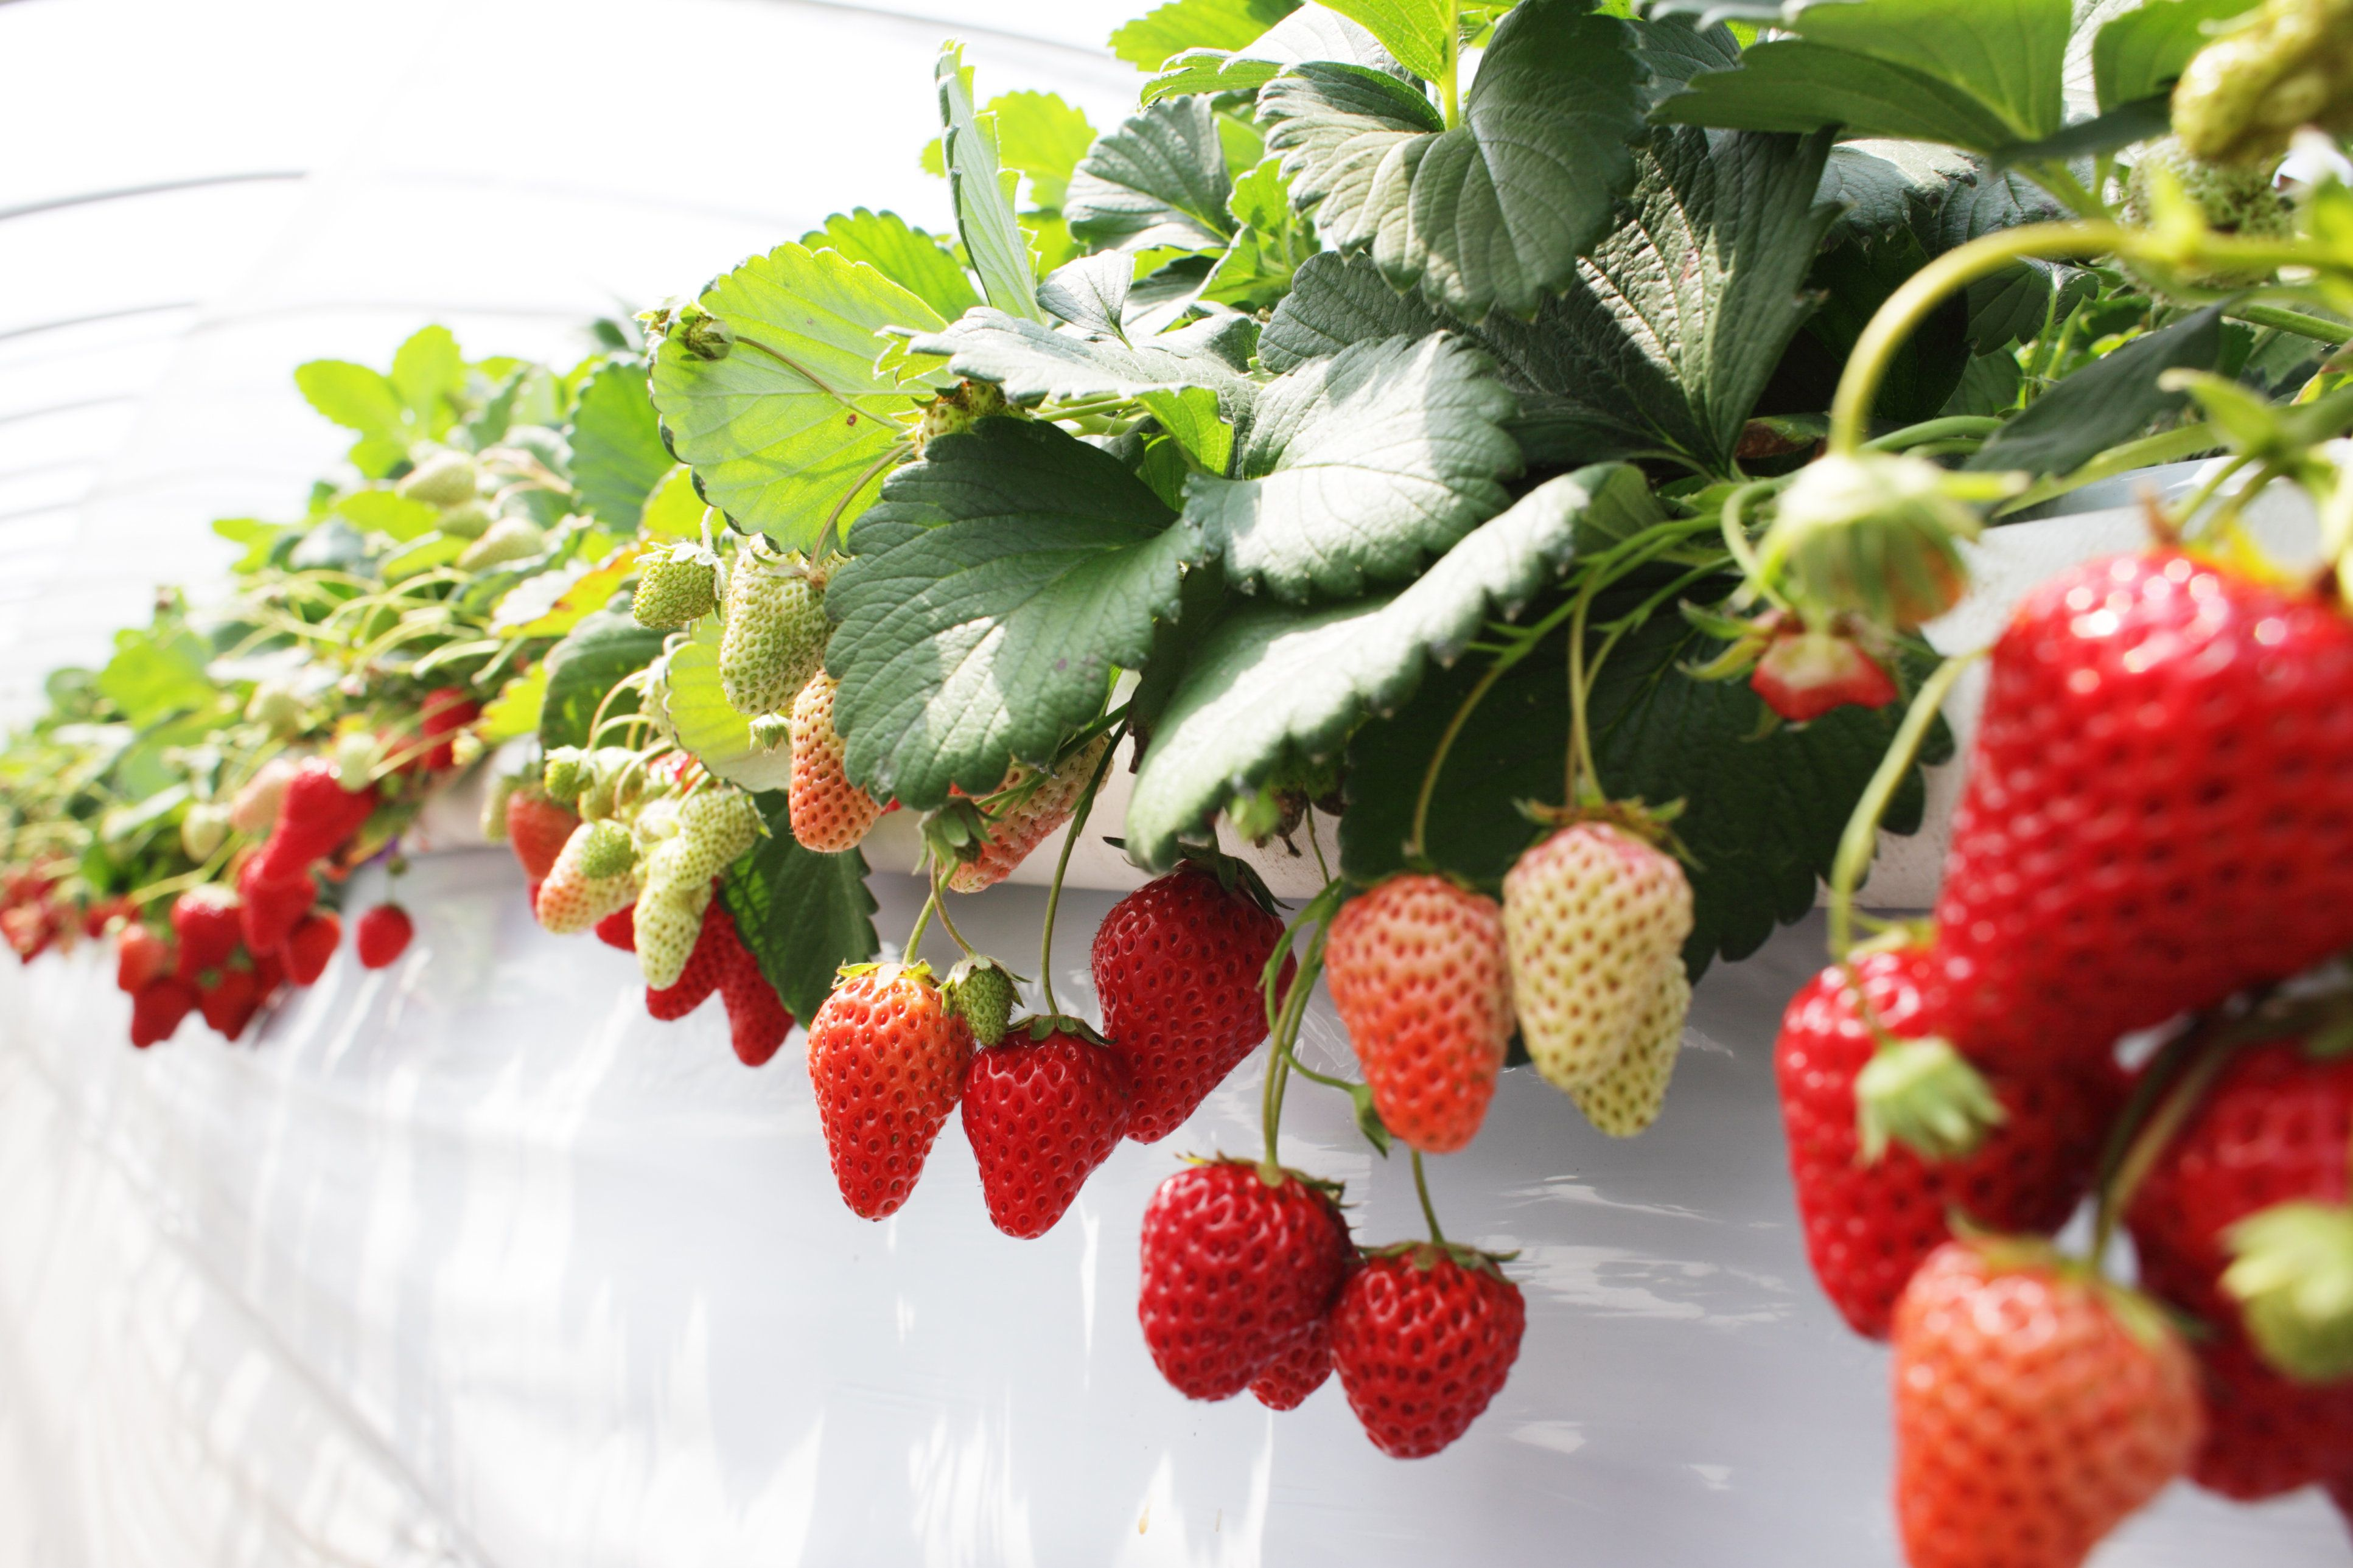 Greenhouse of strawberry